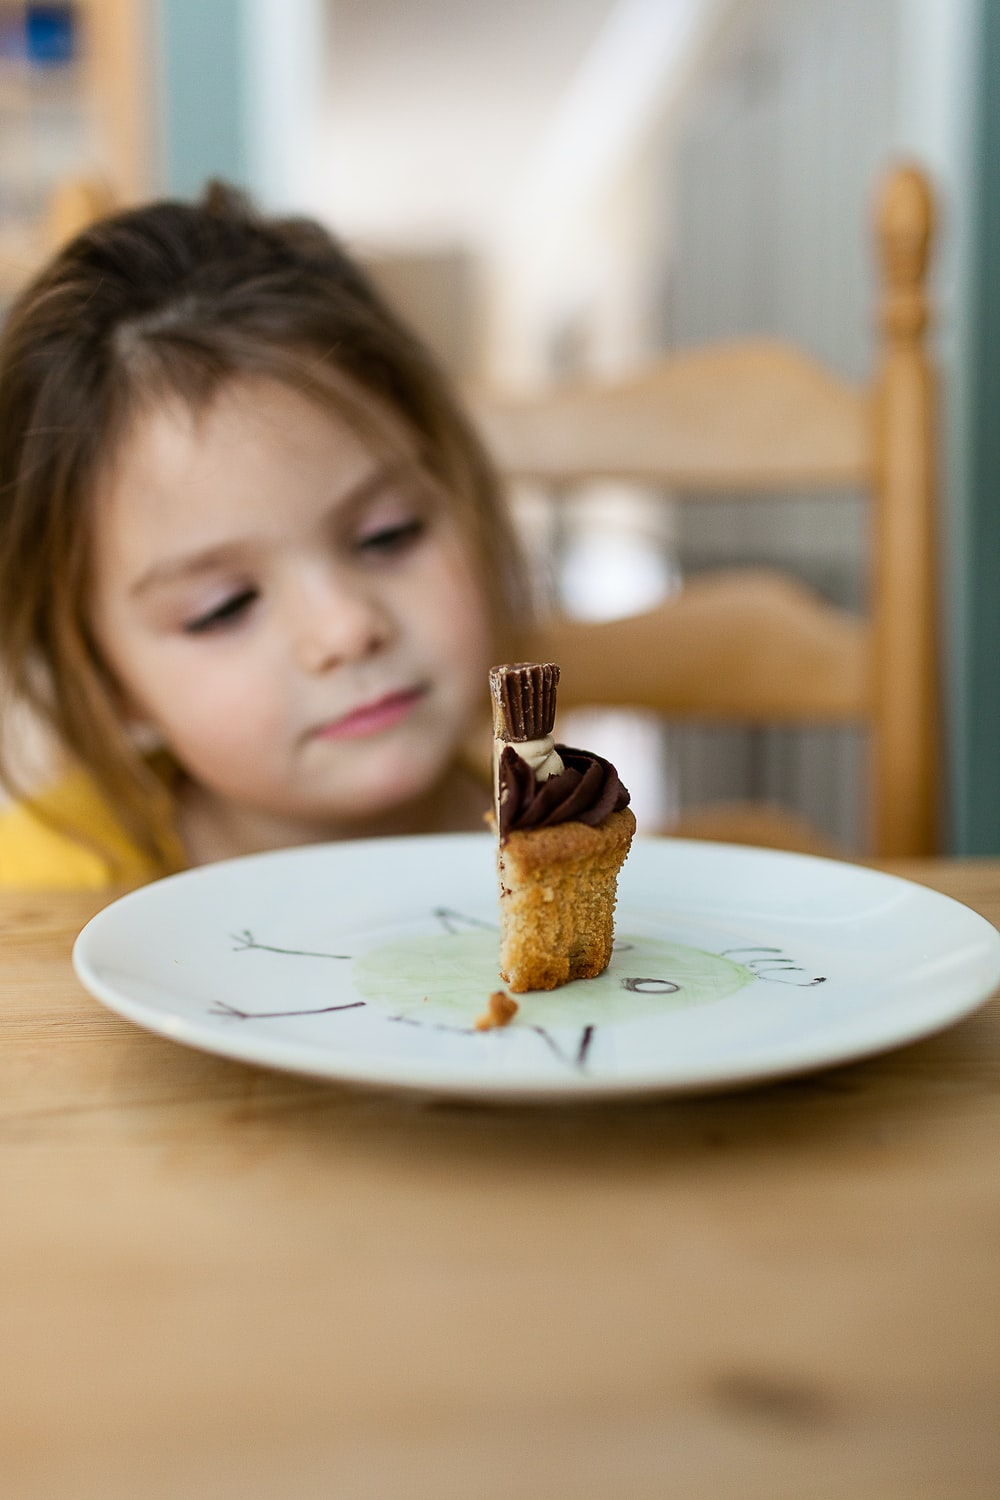 girl staring at the cake on plate